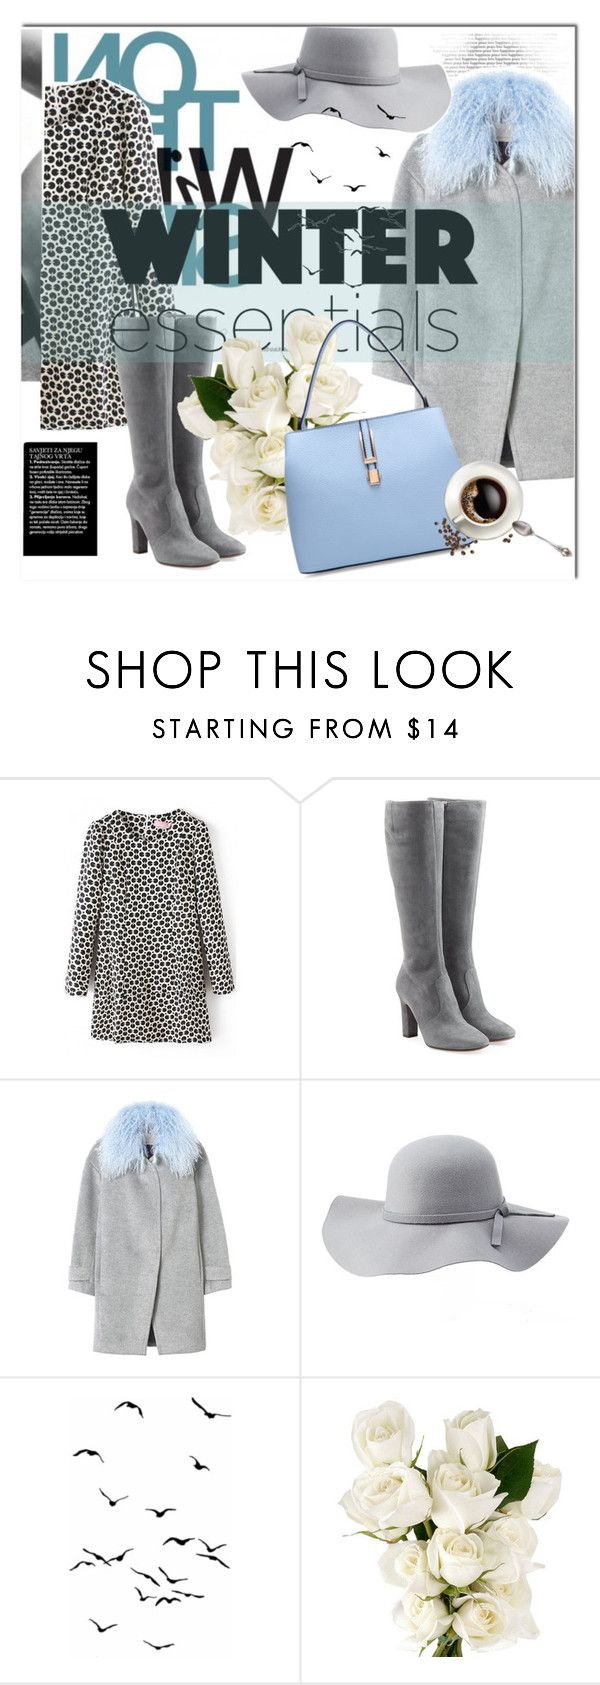 """Winter Essentials"" by bombaysapphire ❤ liked on Polyvore featuring moda, L'Autre Chose, Rebecca Taylor, Charlotte Russe ve Rebecca White"